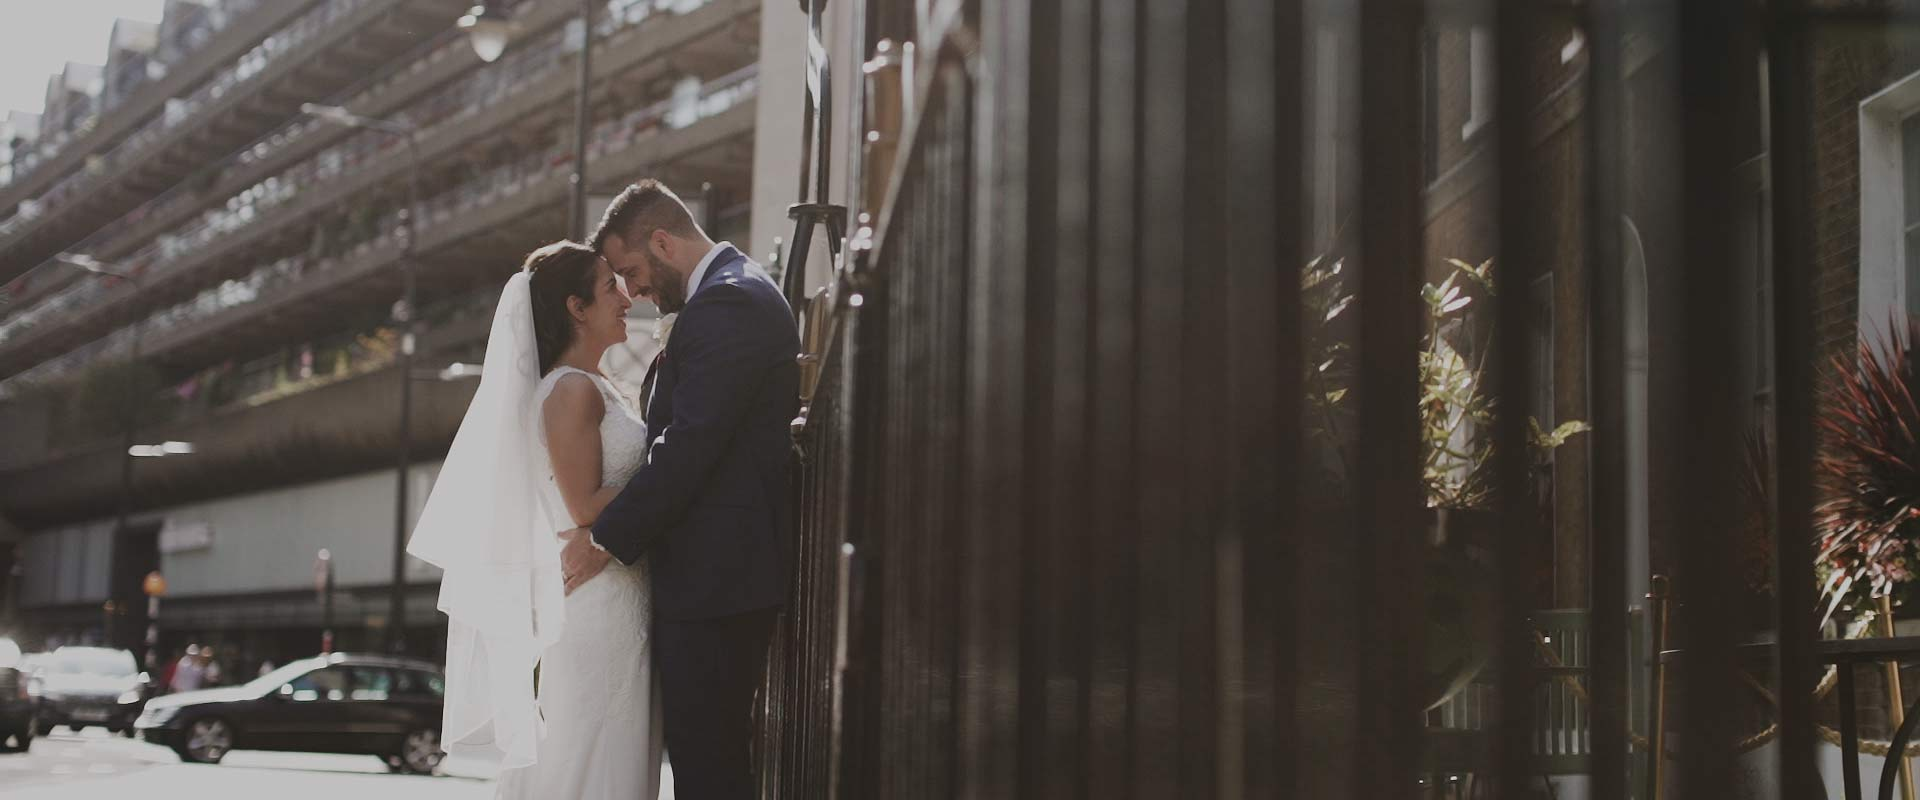 Greek Orthodox Wedding Video at The Brewery London